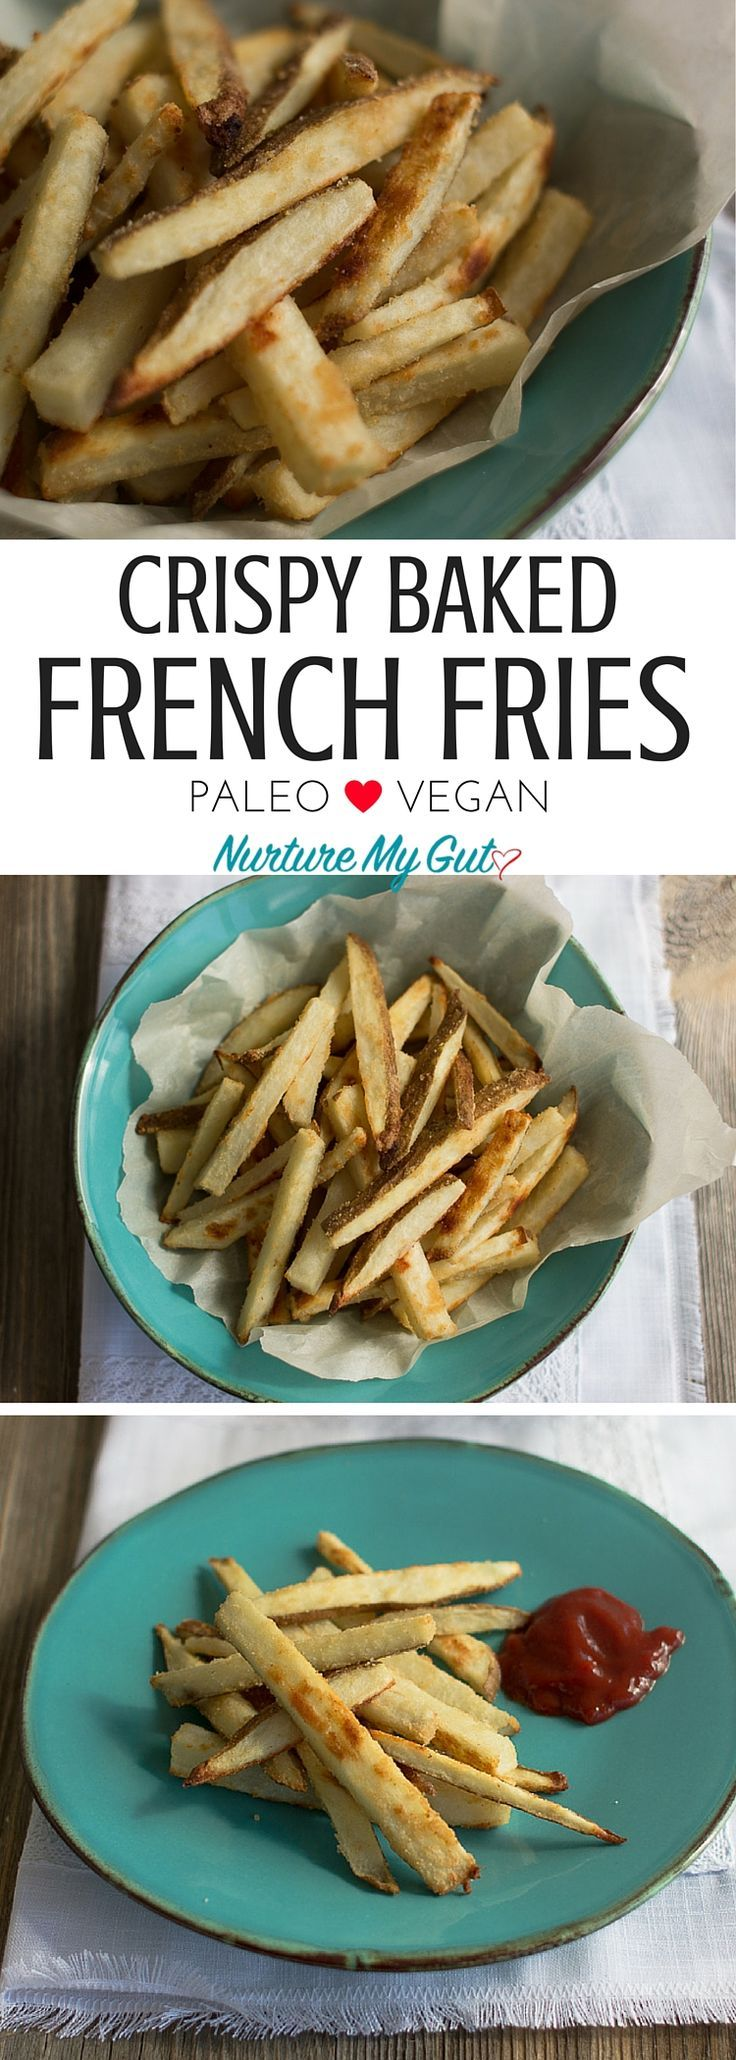 Crispy Baked French Fries. Coated in avocado oil and dusted in coconut ...